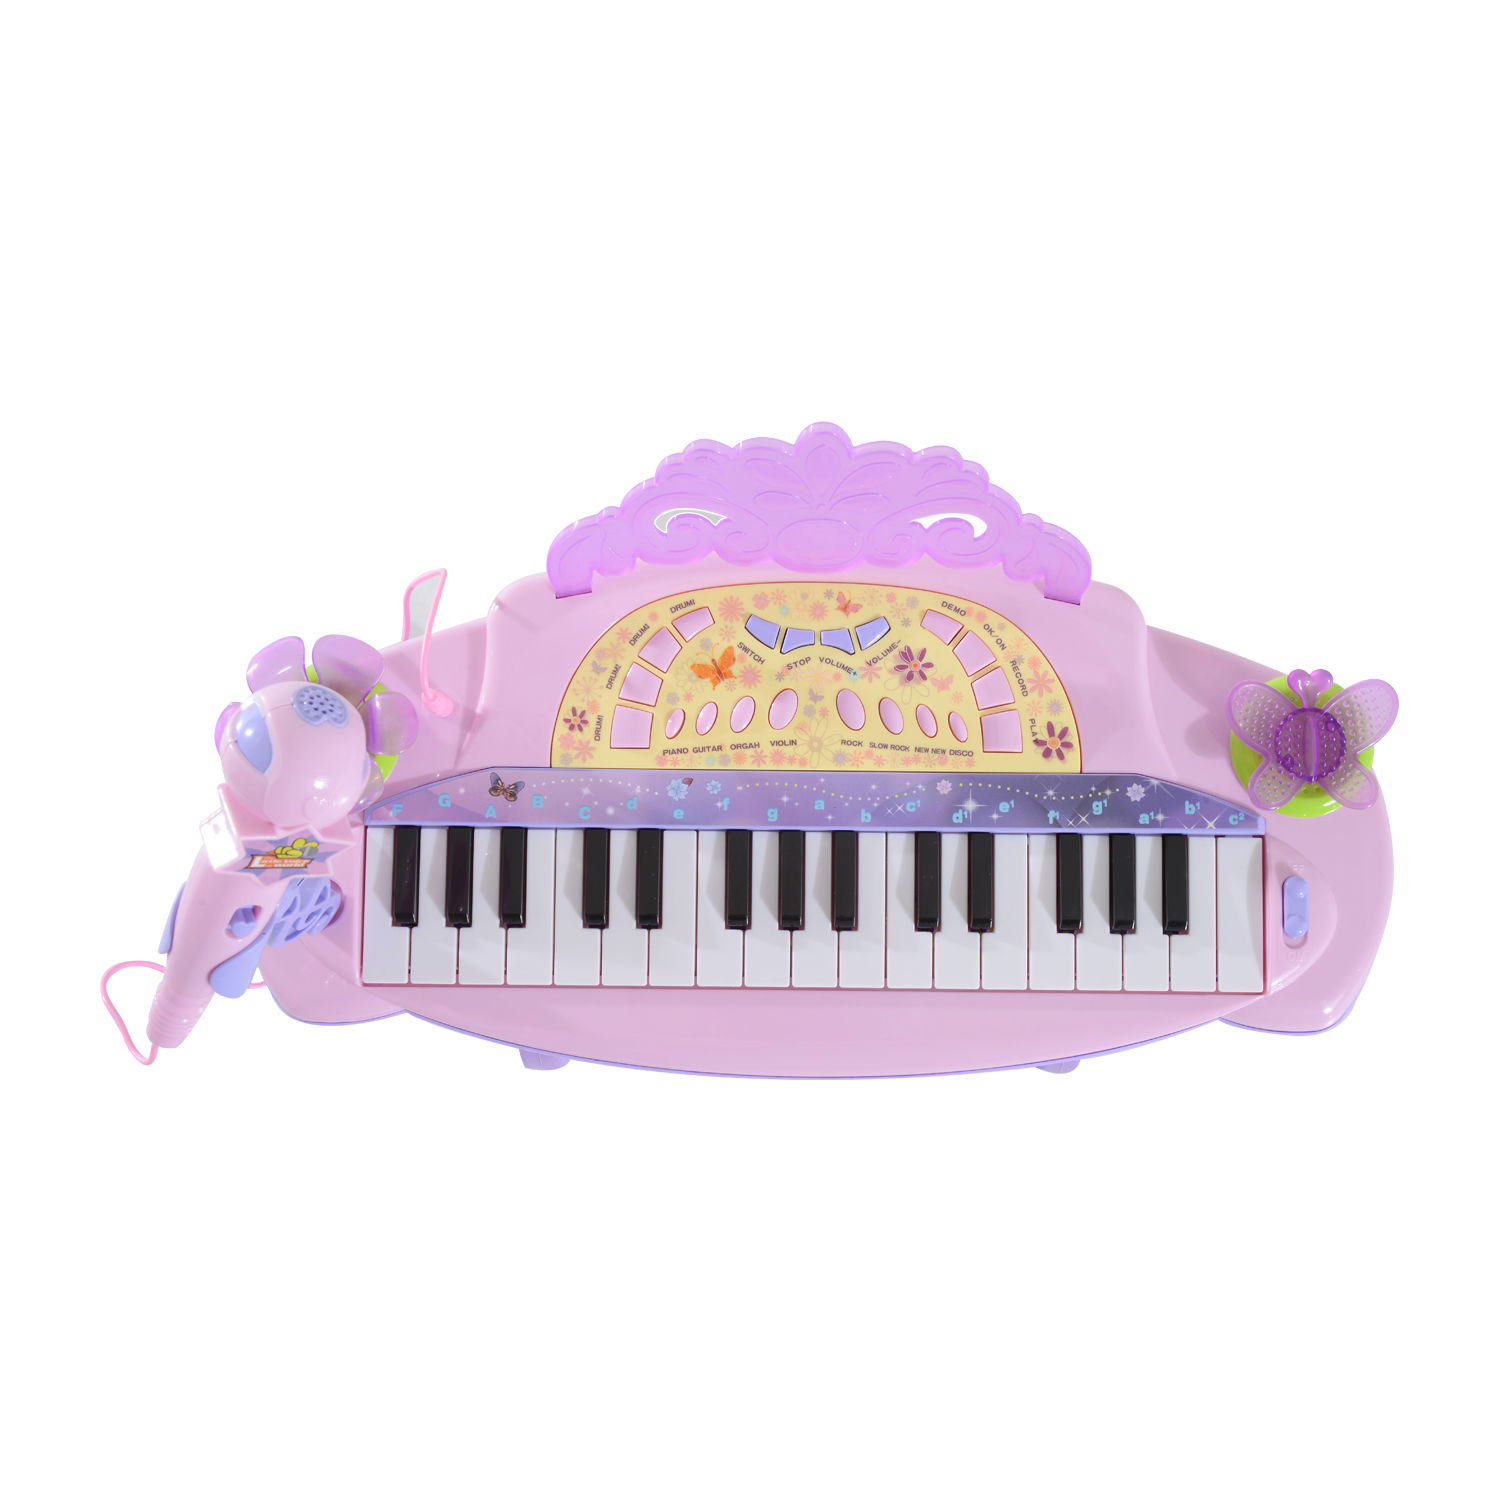 37-32-Key-Kids-Electronic-Keyboard-Mini-Grand-Piano-Stool-Microphone-Musical-Toy thumbnail 45